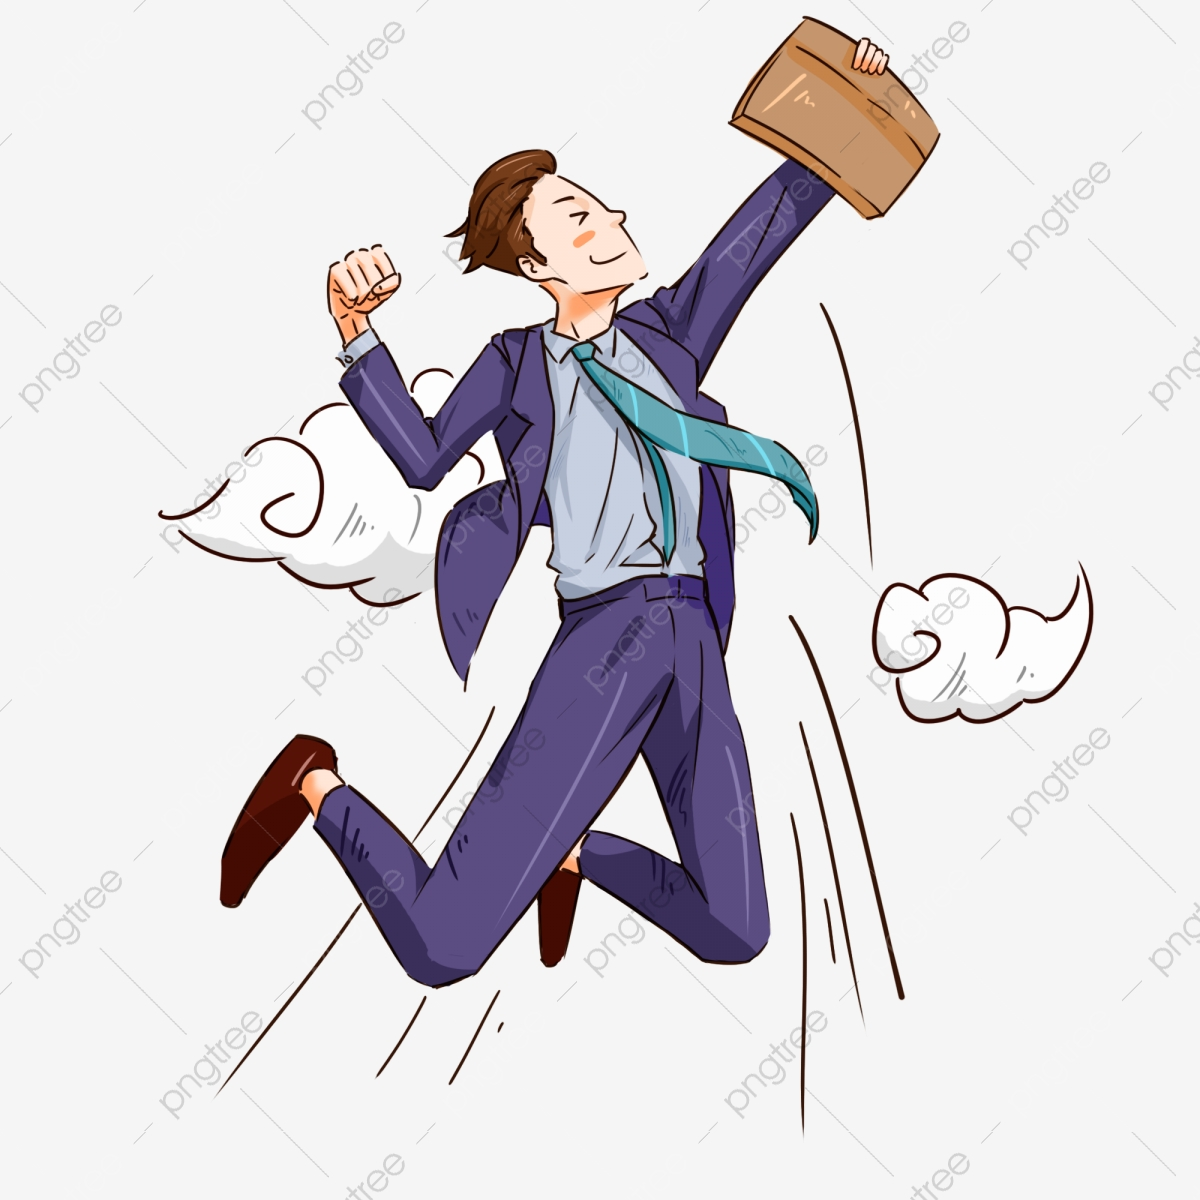 Cartoon Recruiting Success Person Illustration Recruiting Successful Characters Inspirational Blue Suits Png Transparent Clipart Image And Psd File For Free Download